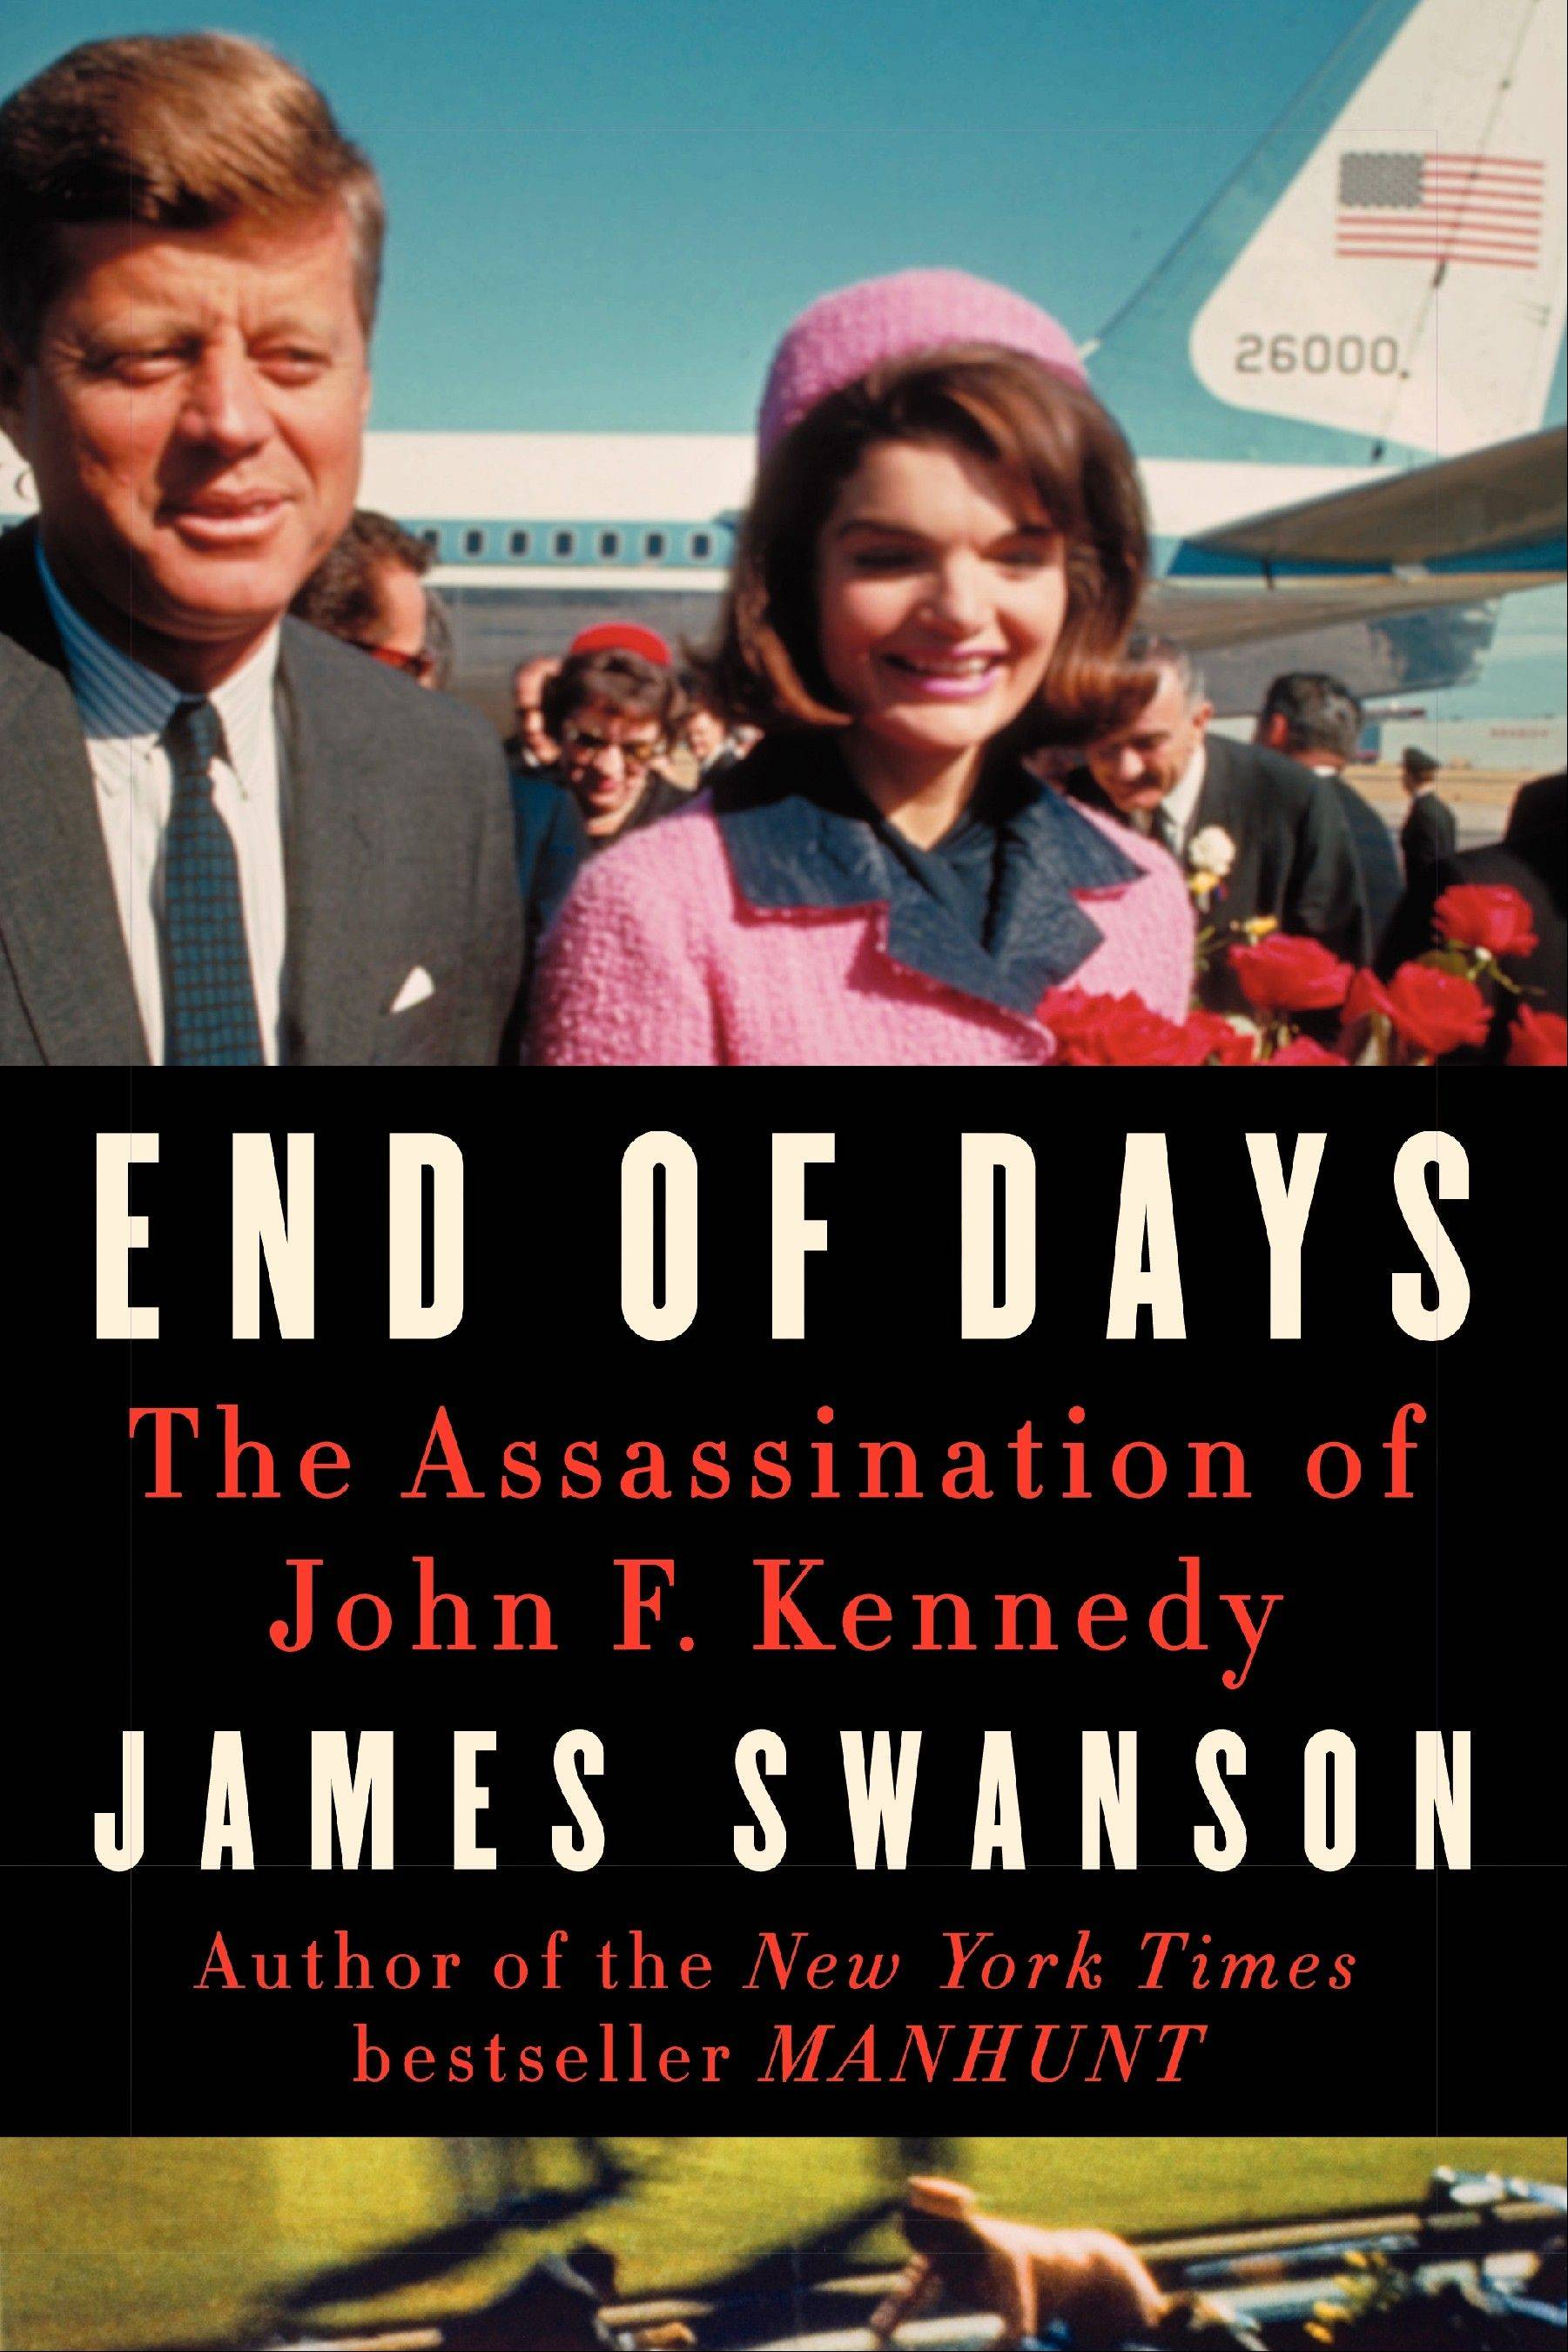 """End of Days: The Assassination of John F. Kennedy"" is the latest book by James Swanson."